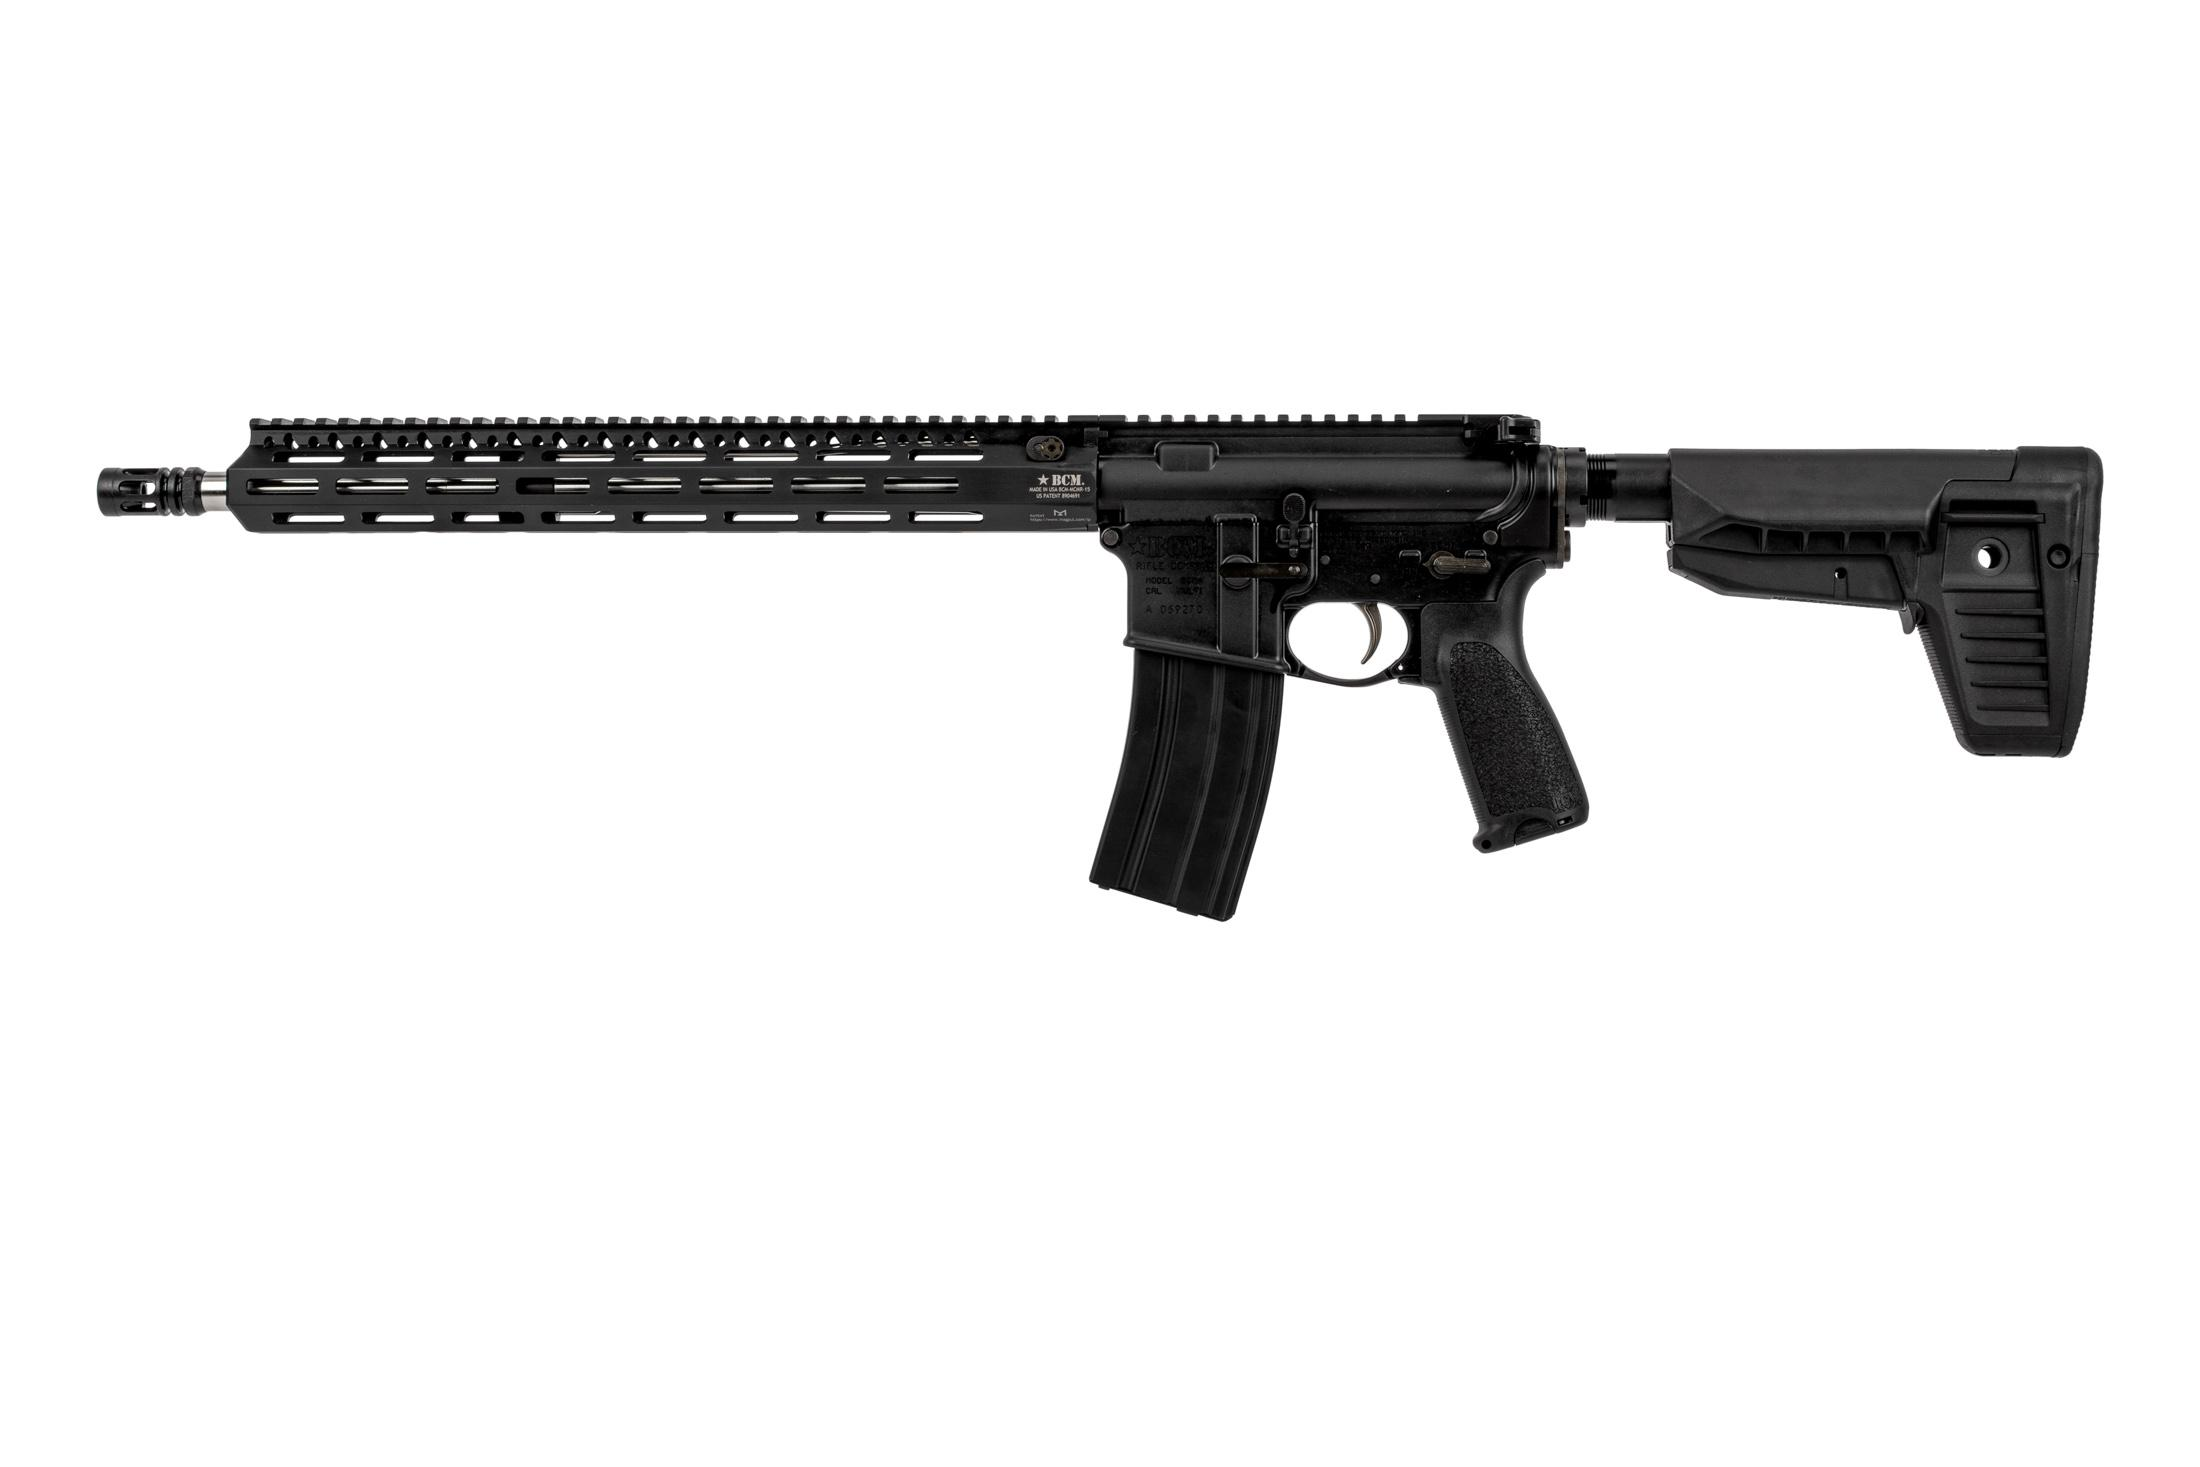 Bravo Company Manufacturing RECCE 16 precision rifle features a mid-length gas system